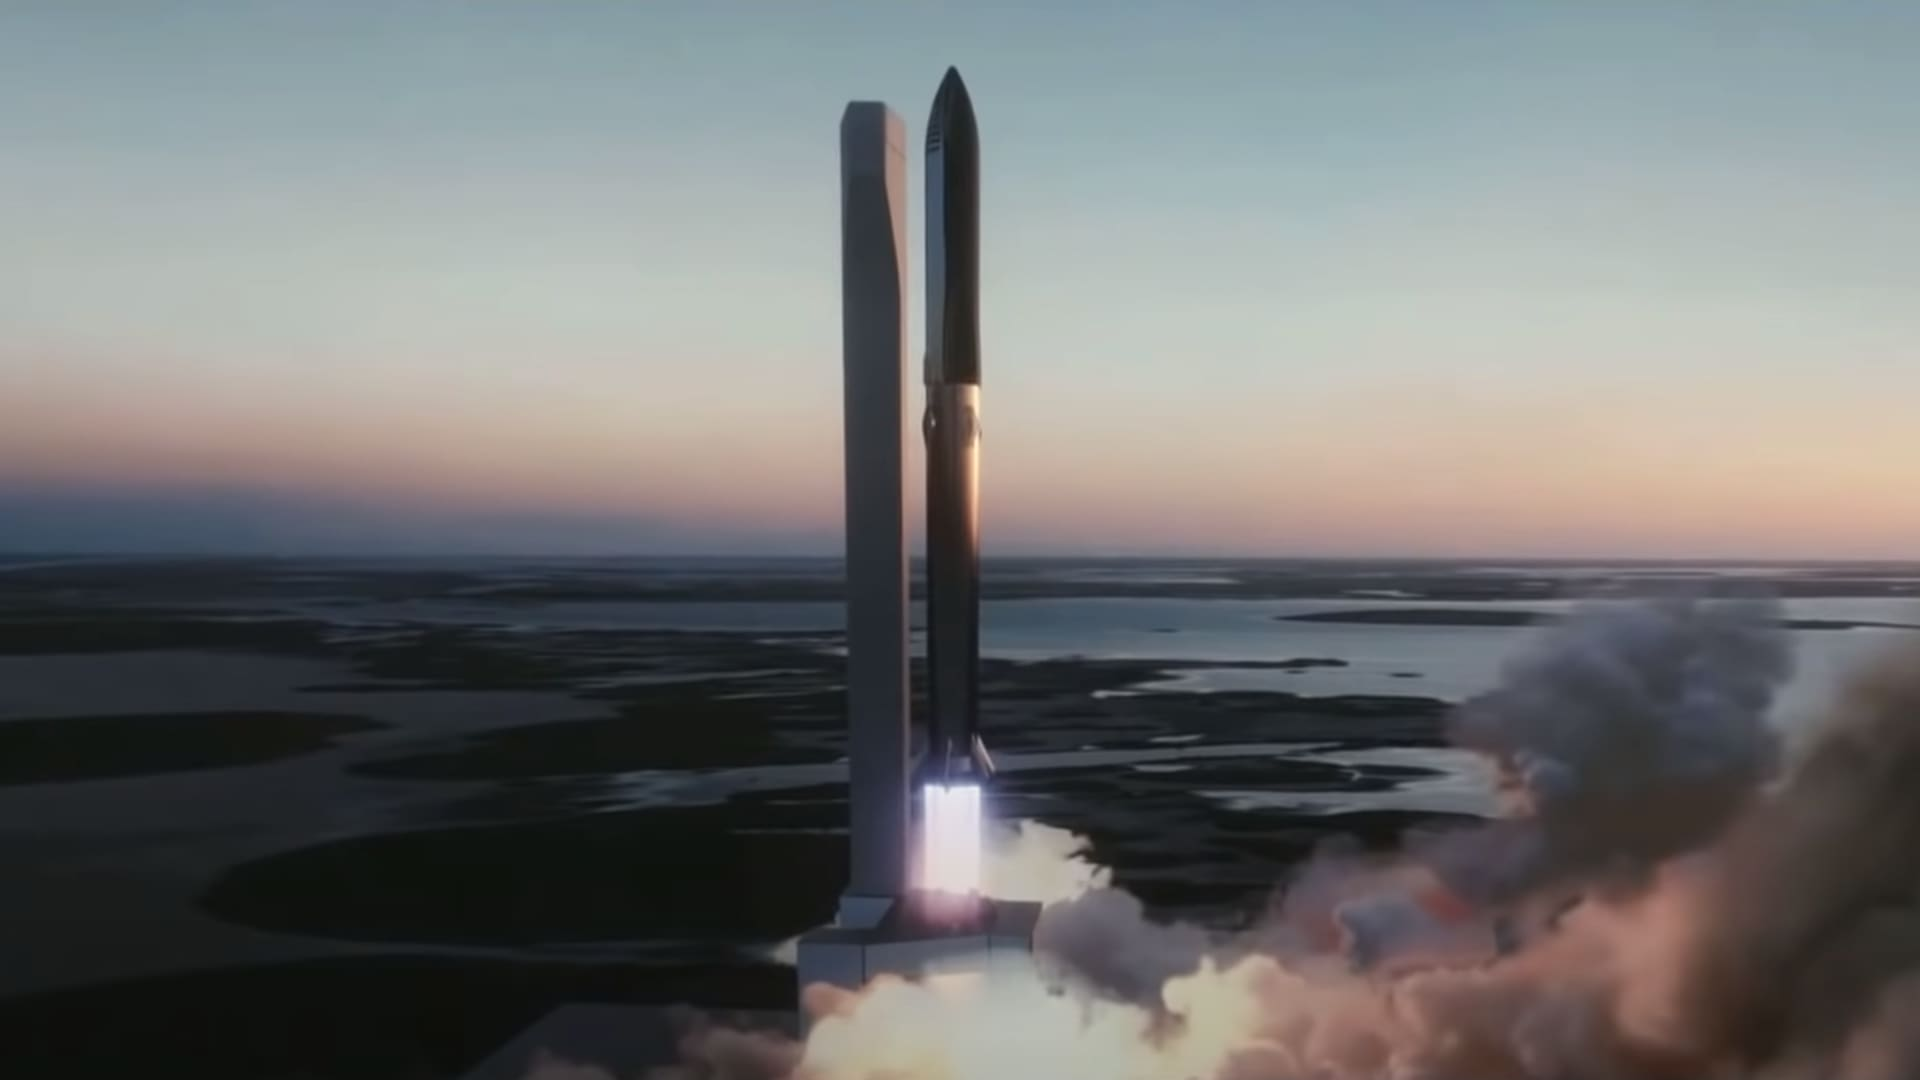 An artist's rendering shows SpaceX's Starship rocket launching on top of its Super Heavy booster.